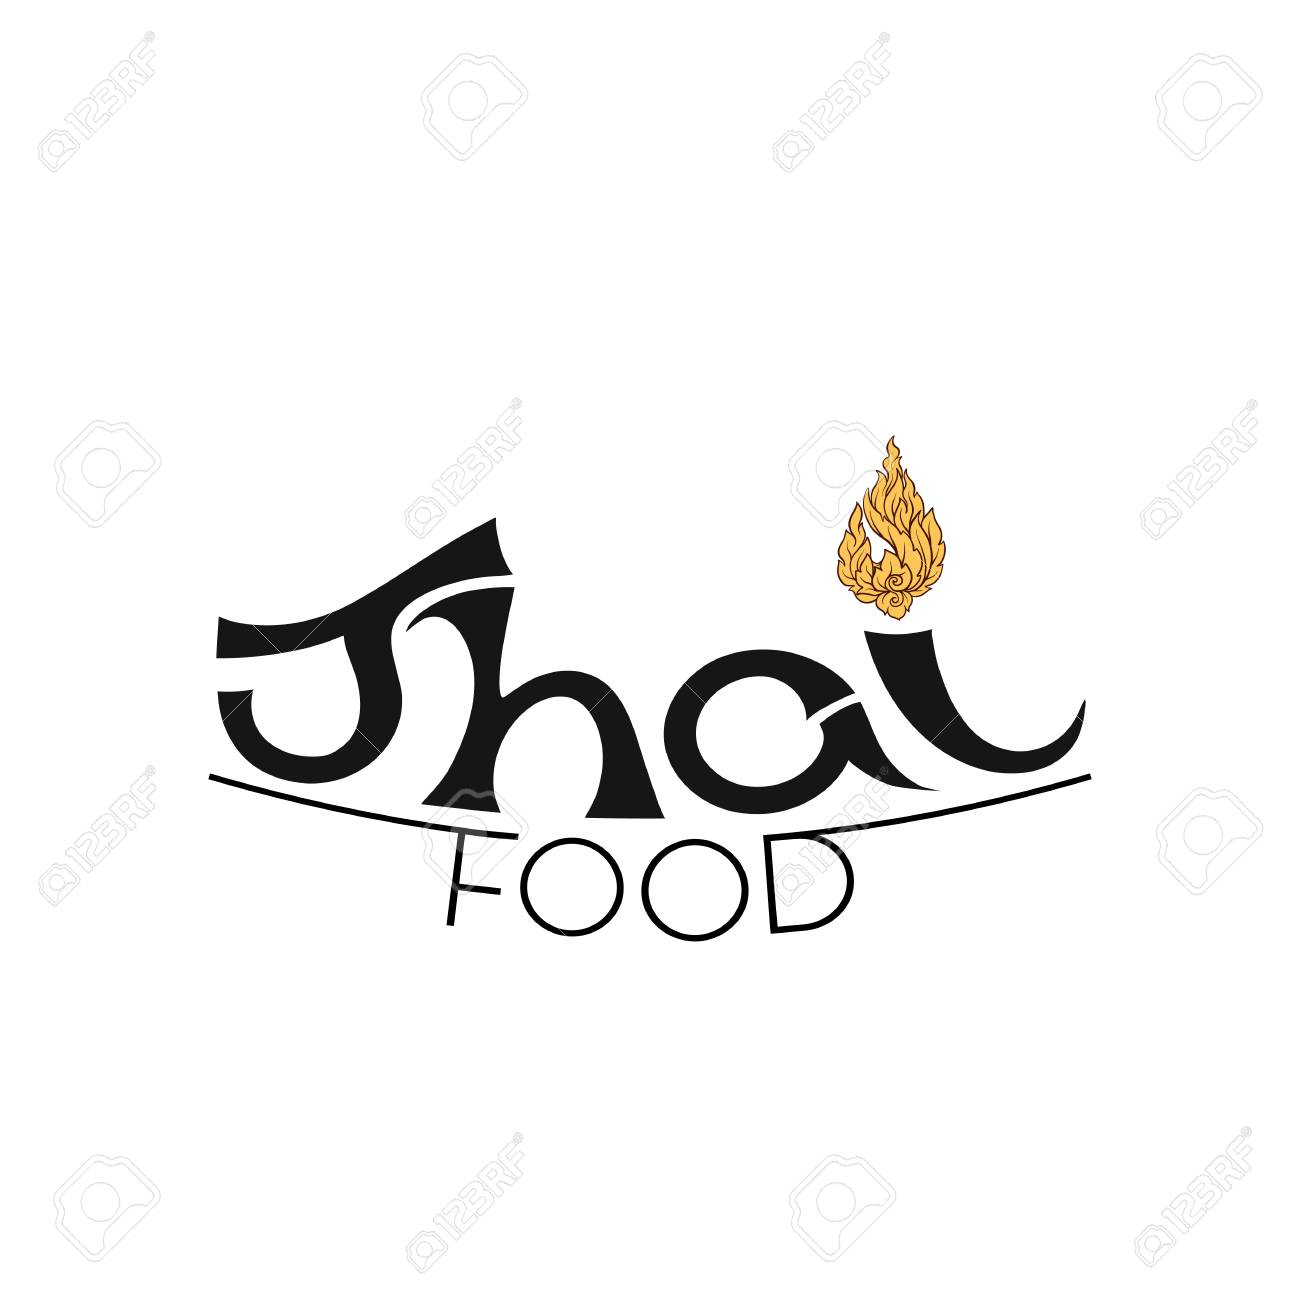 Logo For Thai Food Restaurantwith Traditional Thai Ornament Royalty Free Cliparts Vectors And Stock Illustration Image 106702562